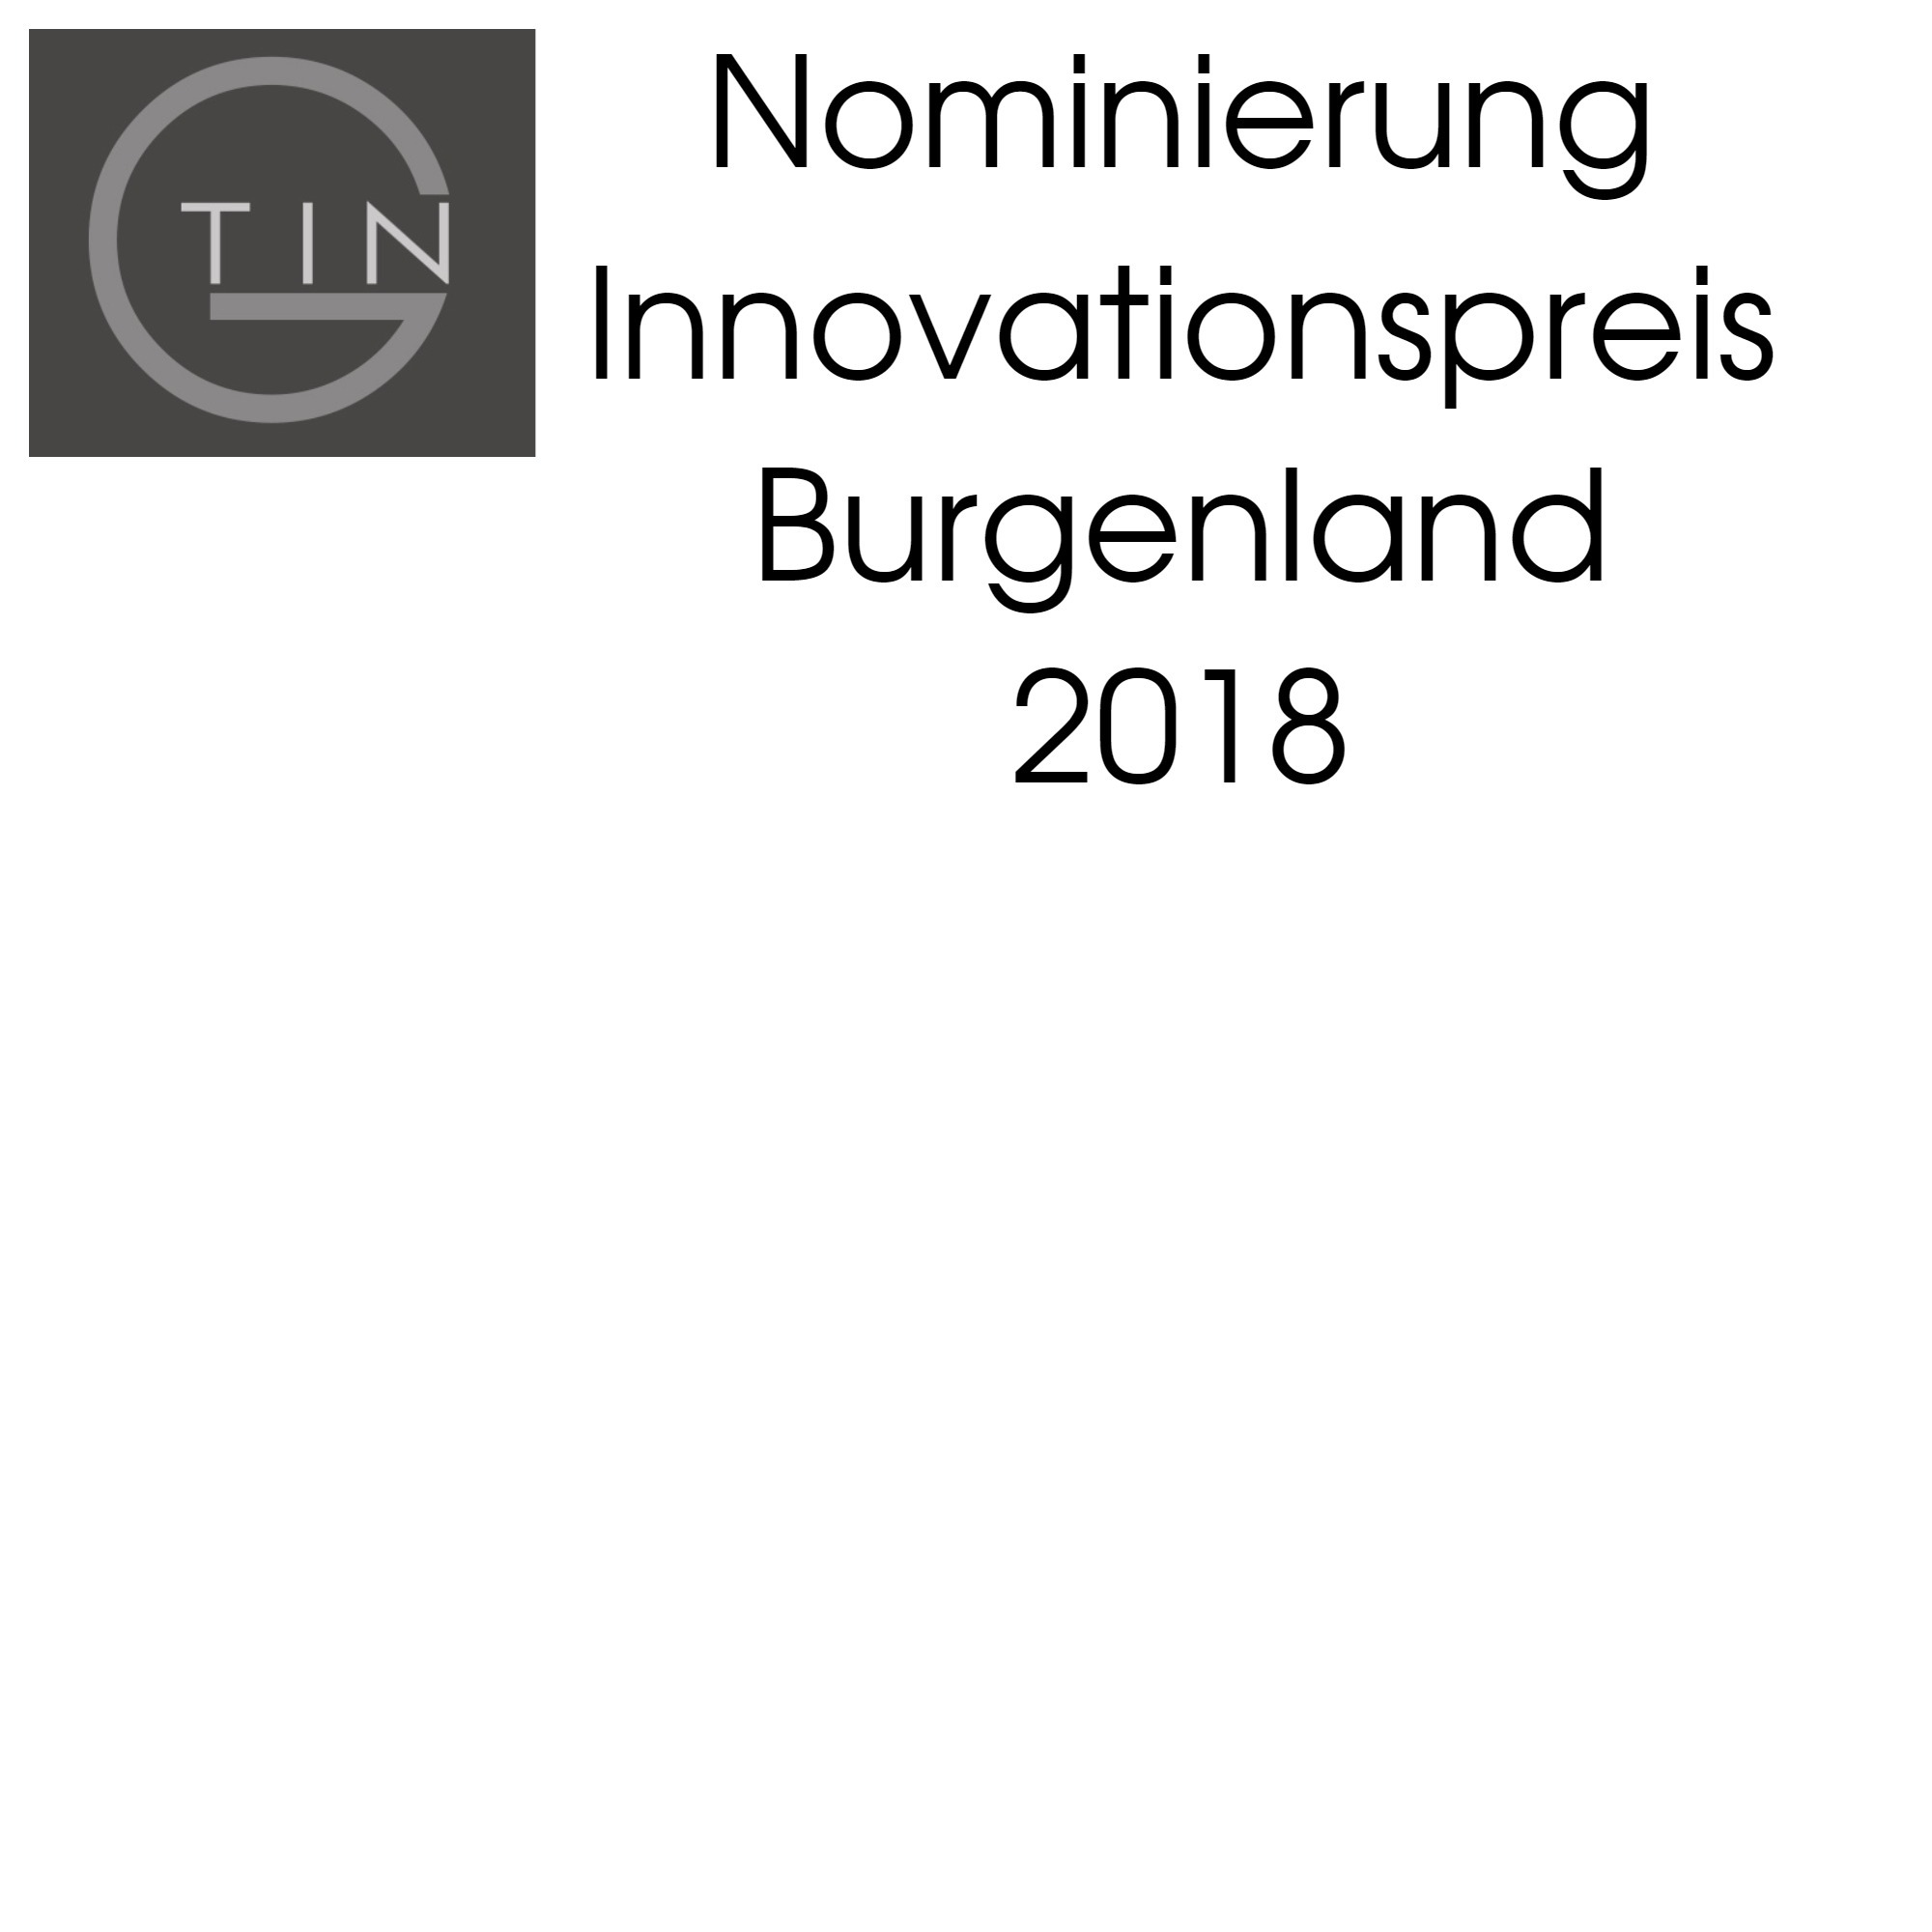 NominierungInnov.preisBgld Nov18